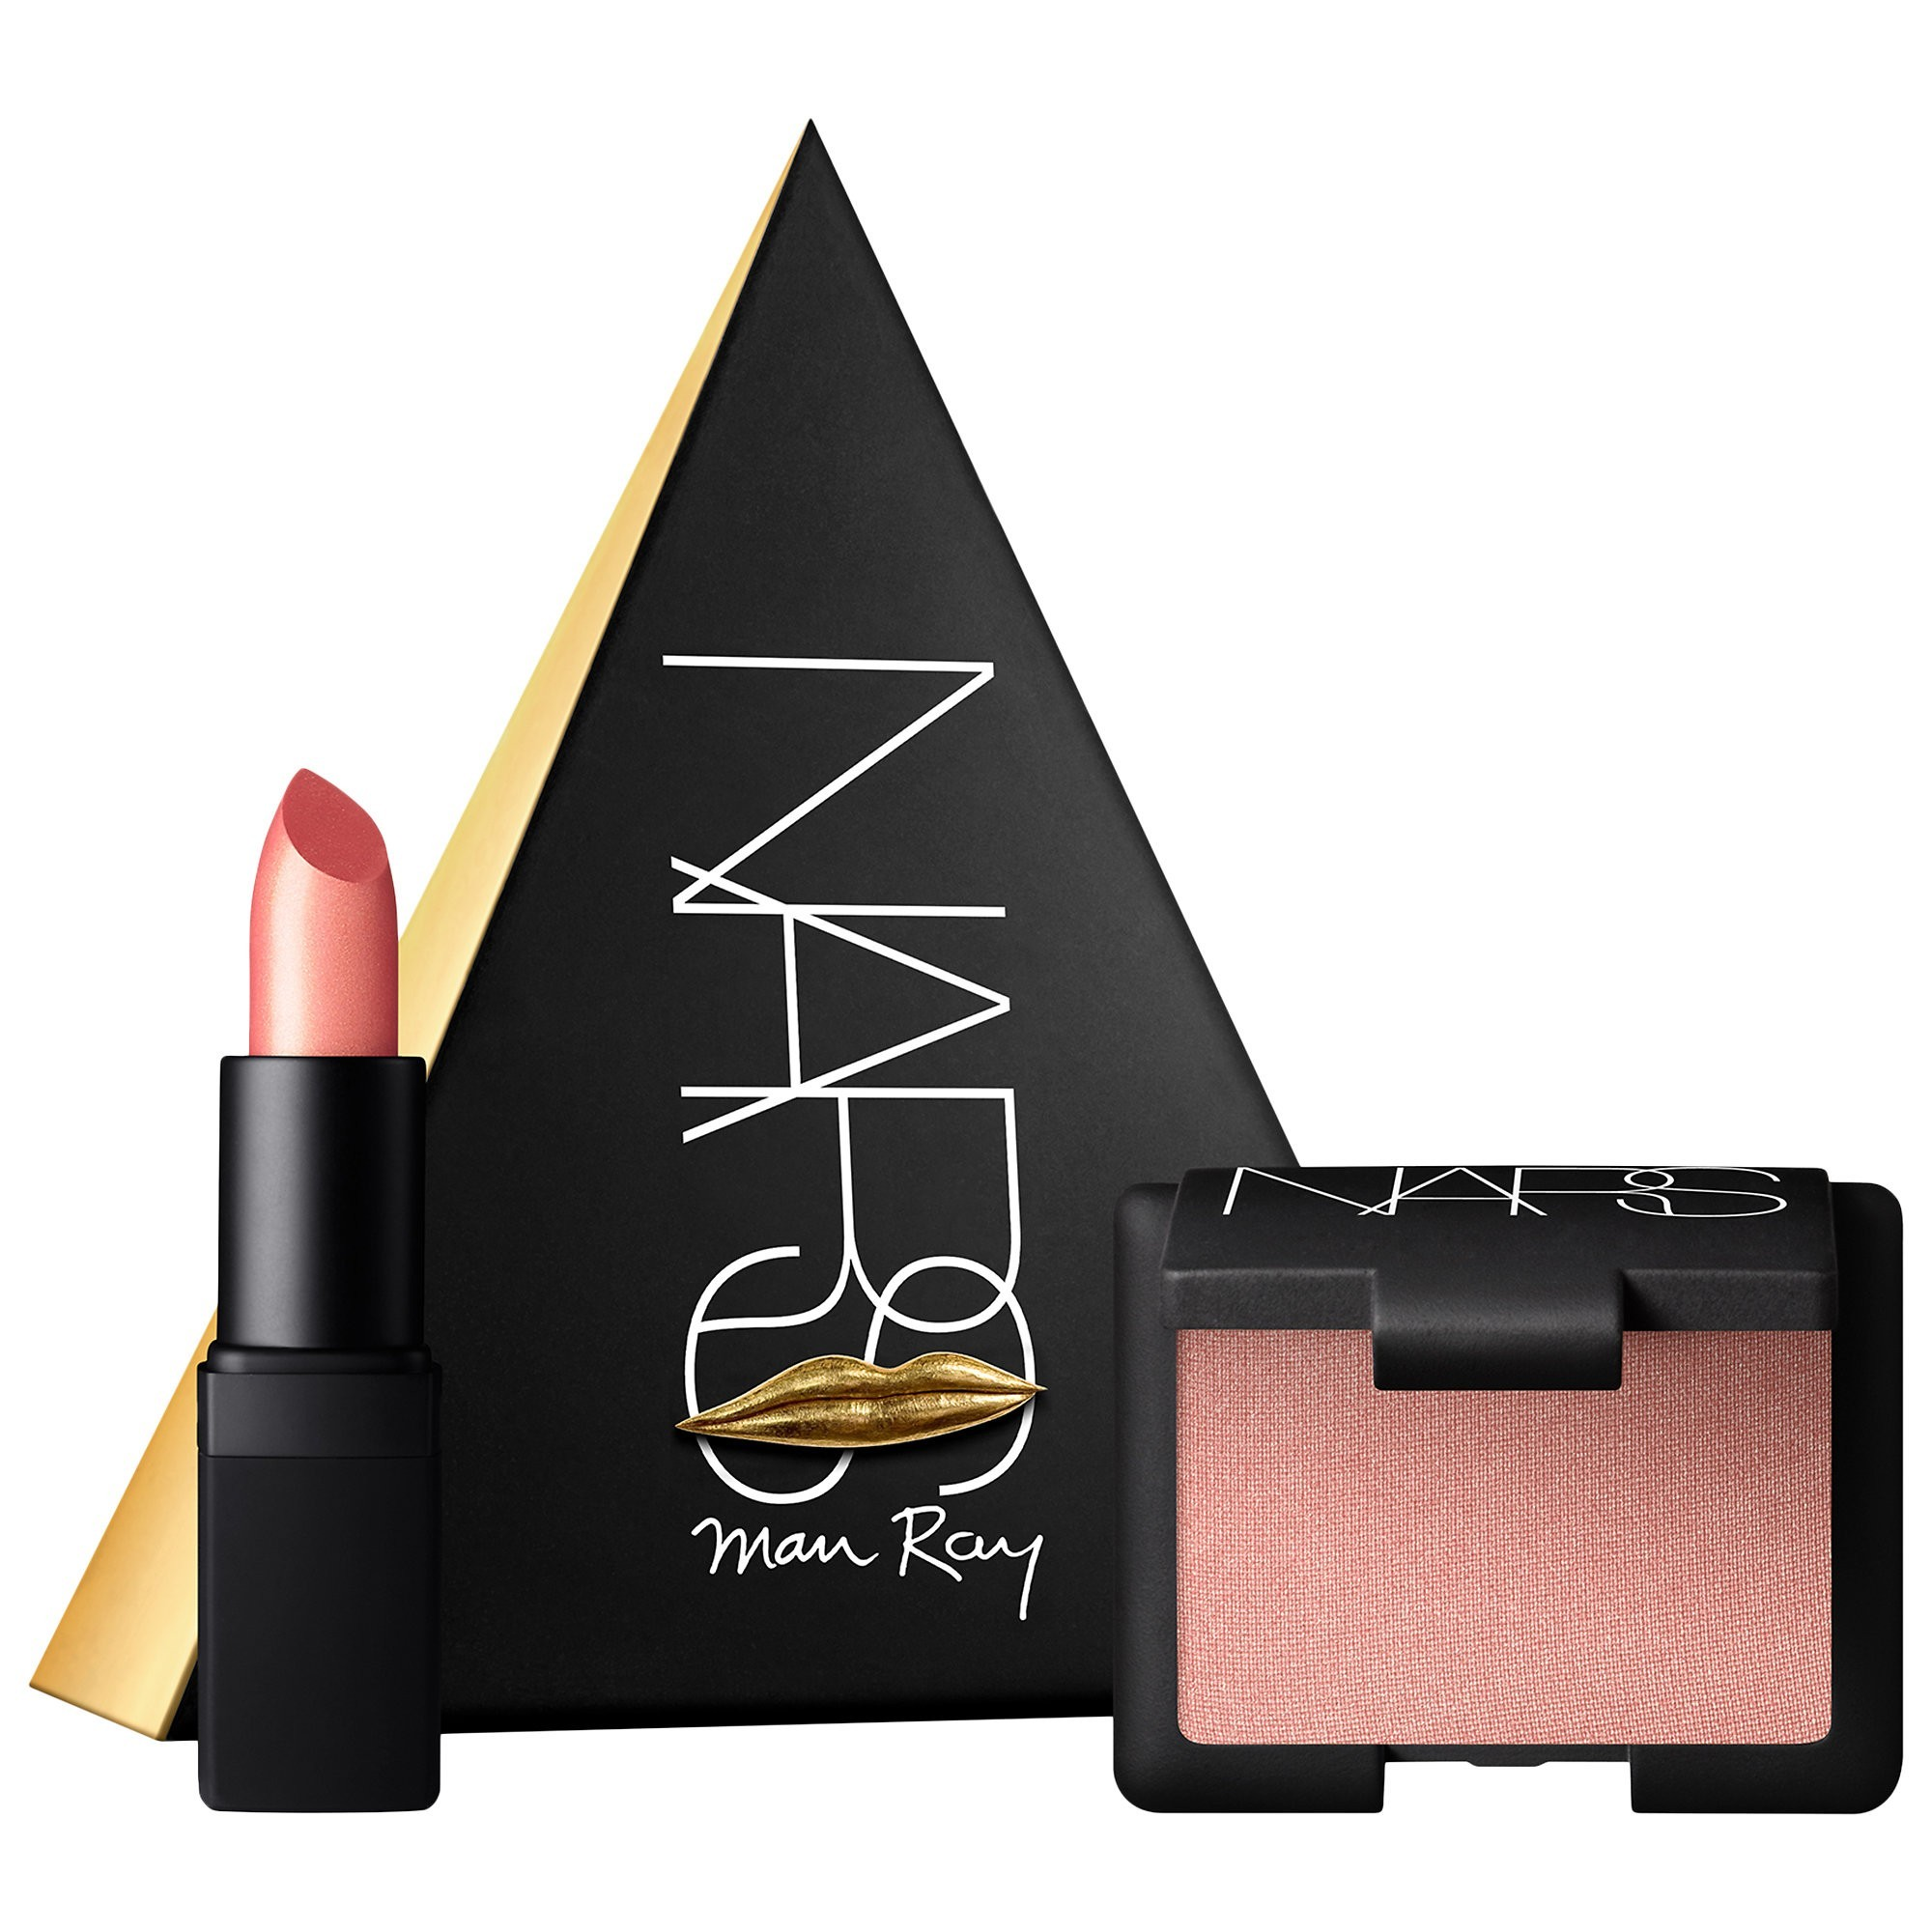 NARS x Man Ray Love Triangle Blush - Lipstick Set Orgasm